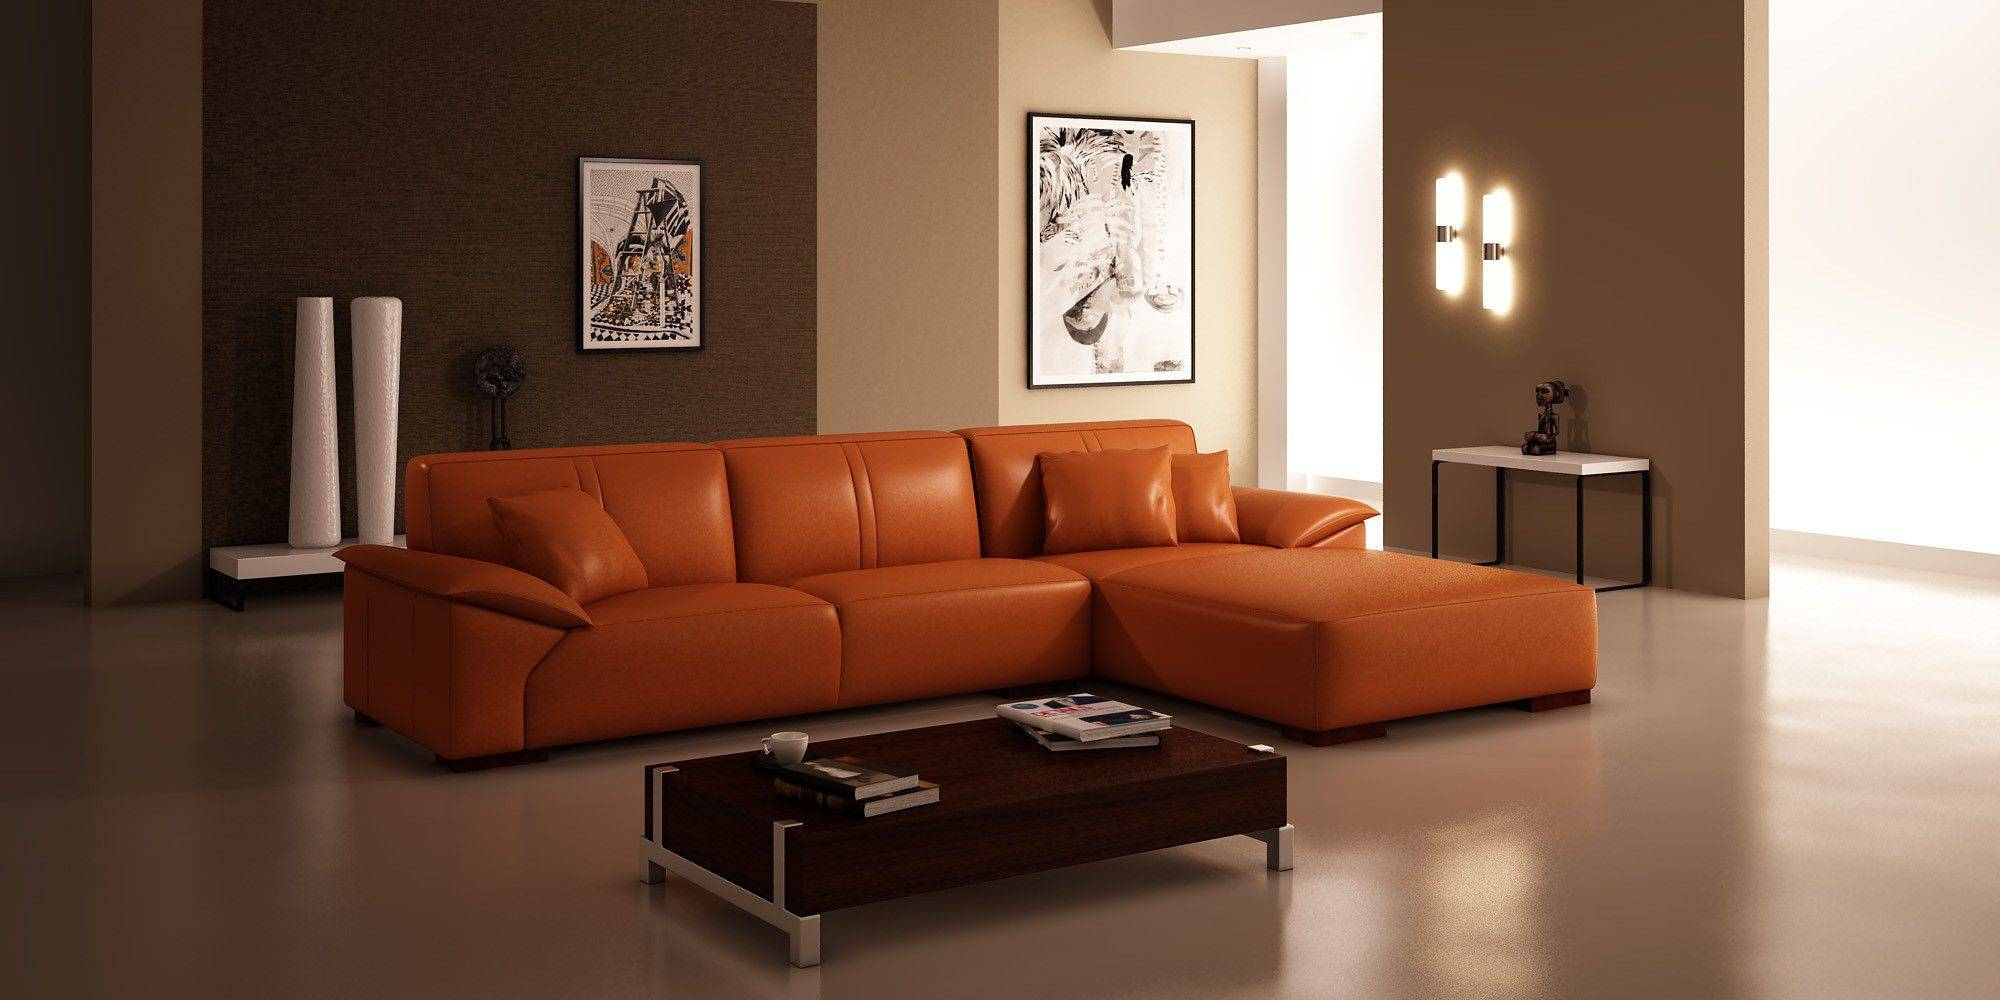 Red-Leather-Sectional-Sofa-Ideas-For-Living-Room-With-Rectangular inside Coffee Table For Sectional Sofa (Image 28 of 30)